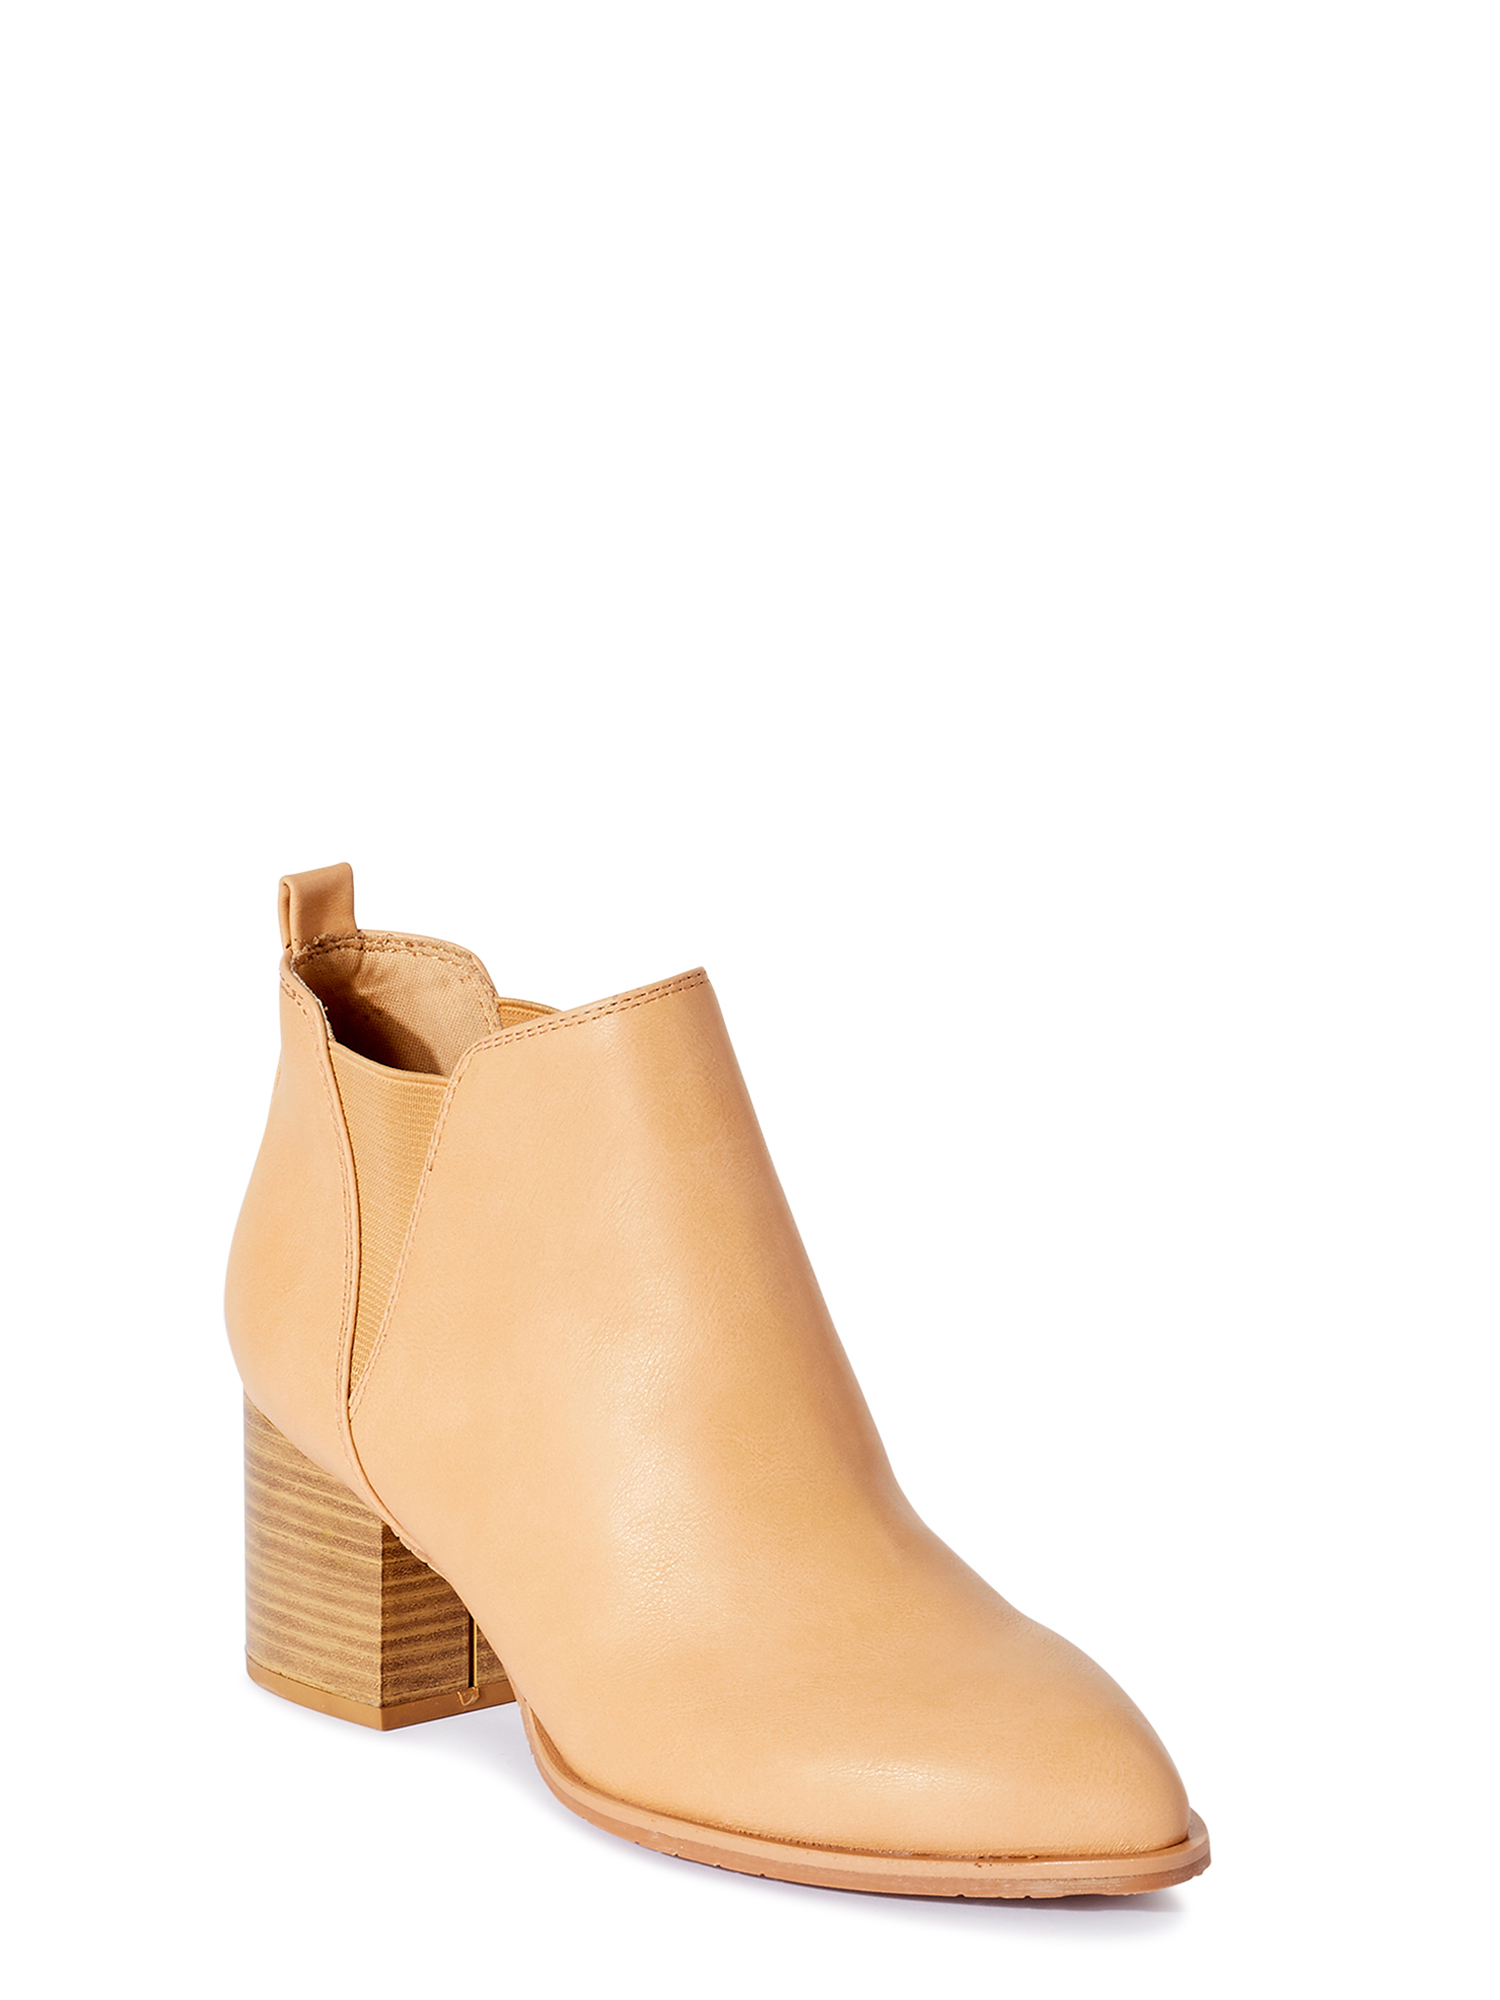 Women Retro Ankle Boots Cut-Out Side Zipper Low Chunky Stacked Block Heels Short Booties Roman Casual Ruched Shoes